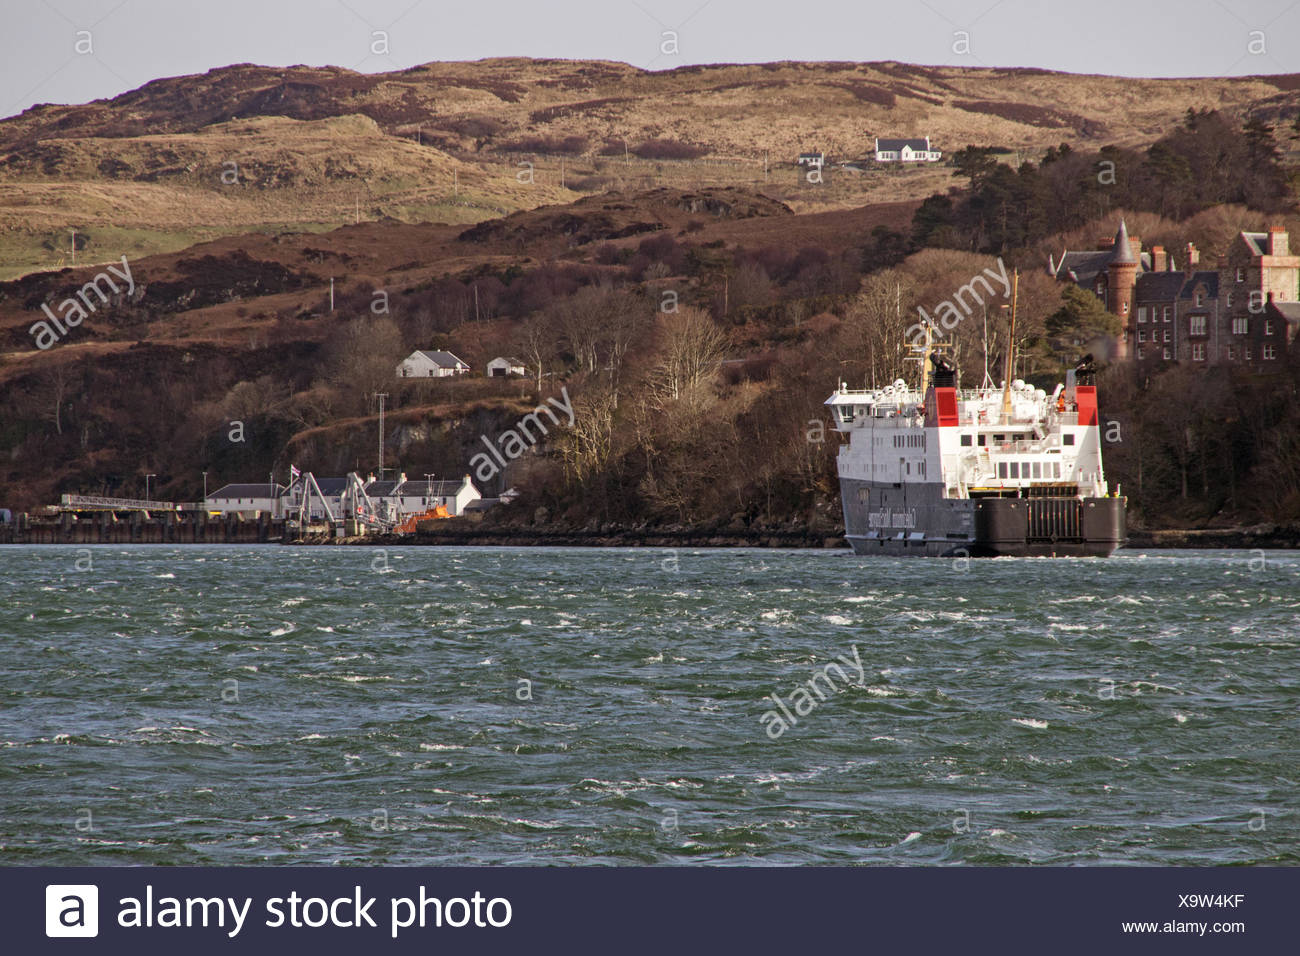 The Caledonian MacBrayne ferry 'Finlaggan' arriving at Port Askaig on Islay. Stock Photo